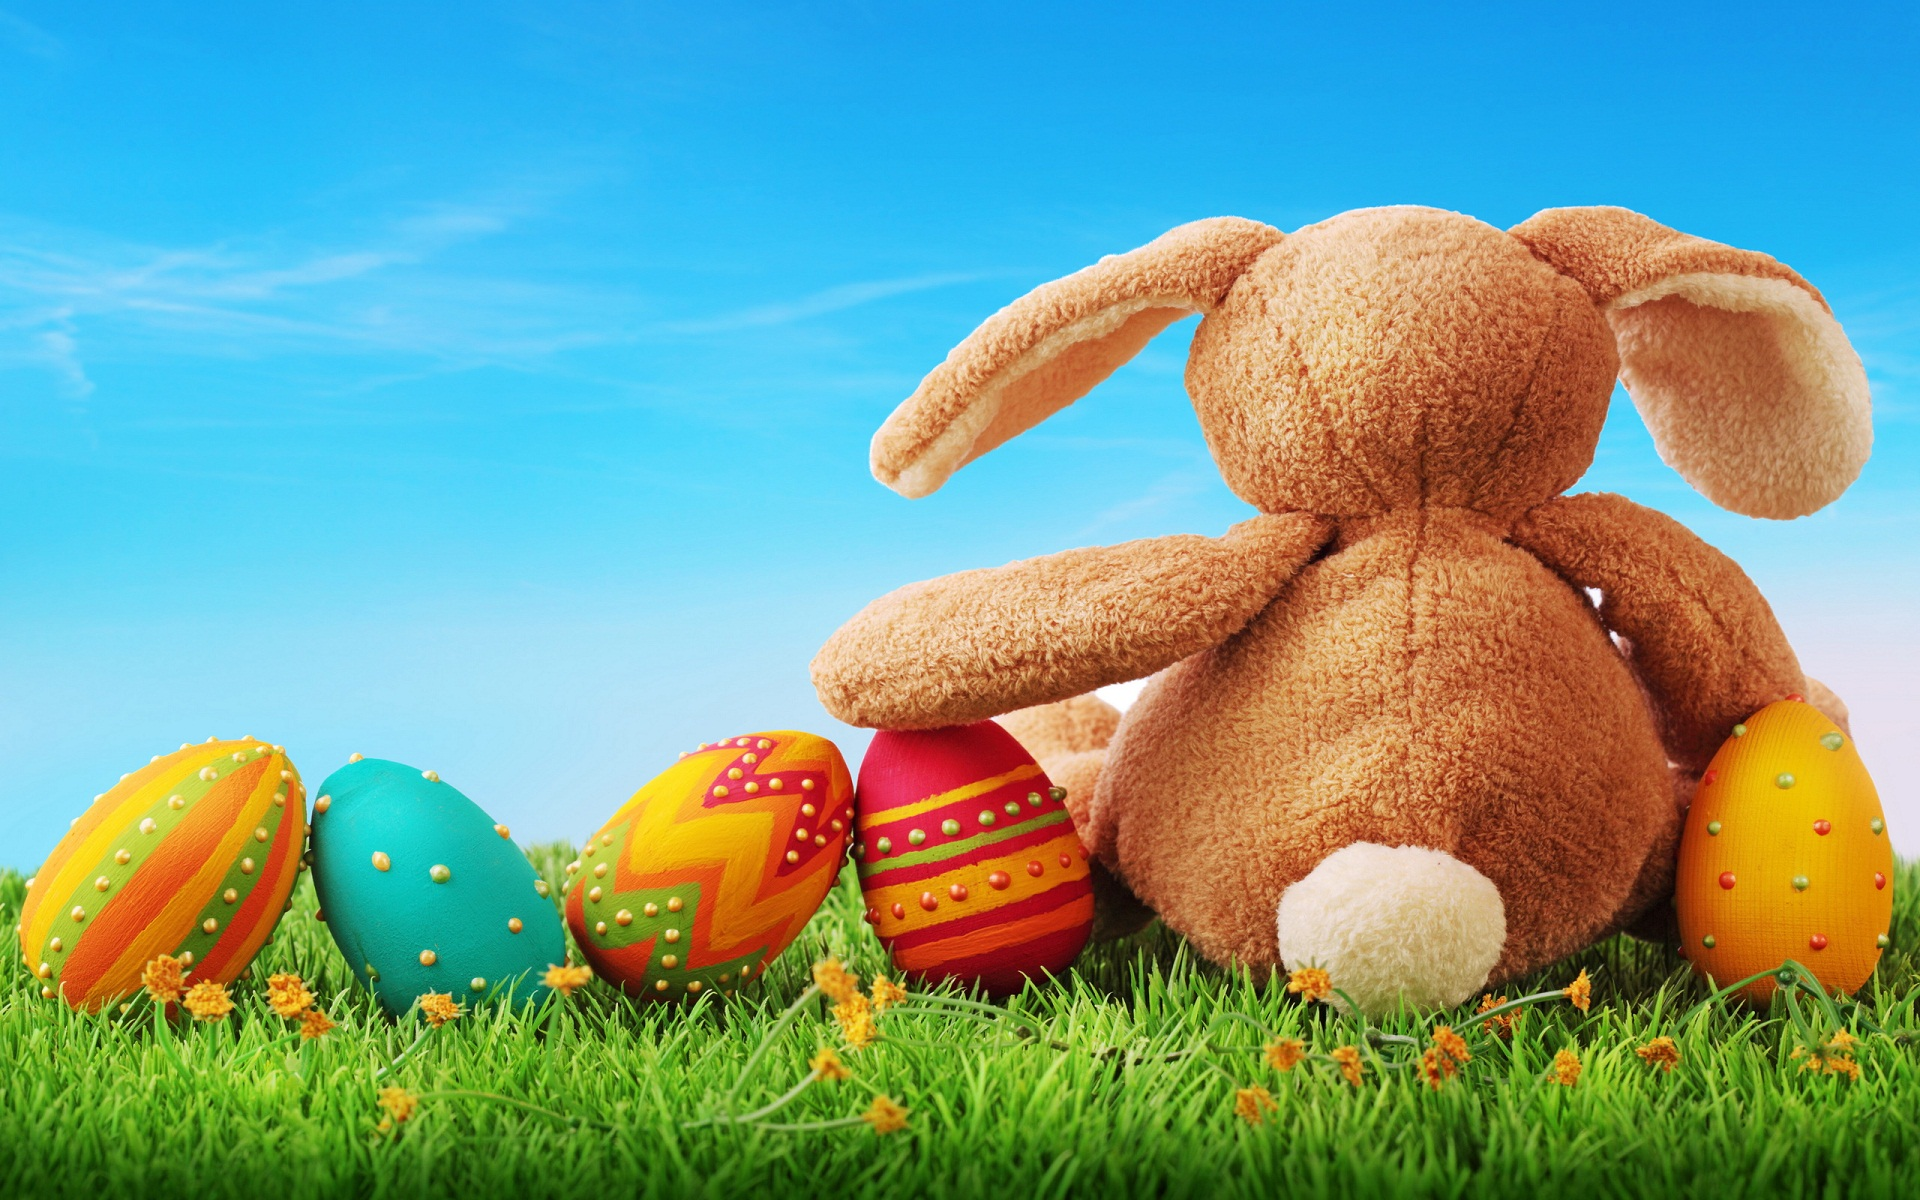 Karoline Kate Wallpapers Previous story Easter Eggs HD Wallpapers 1920x1200